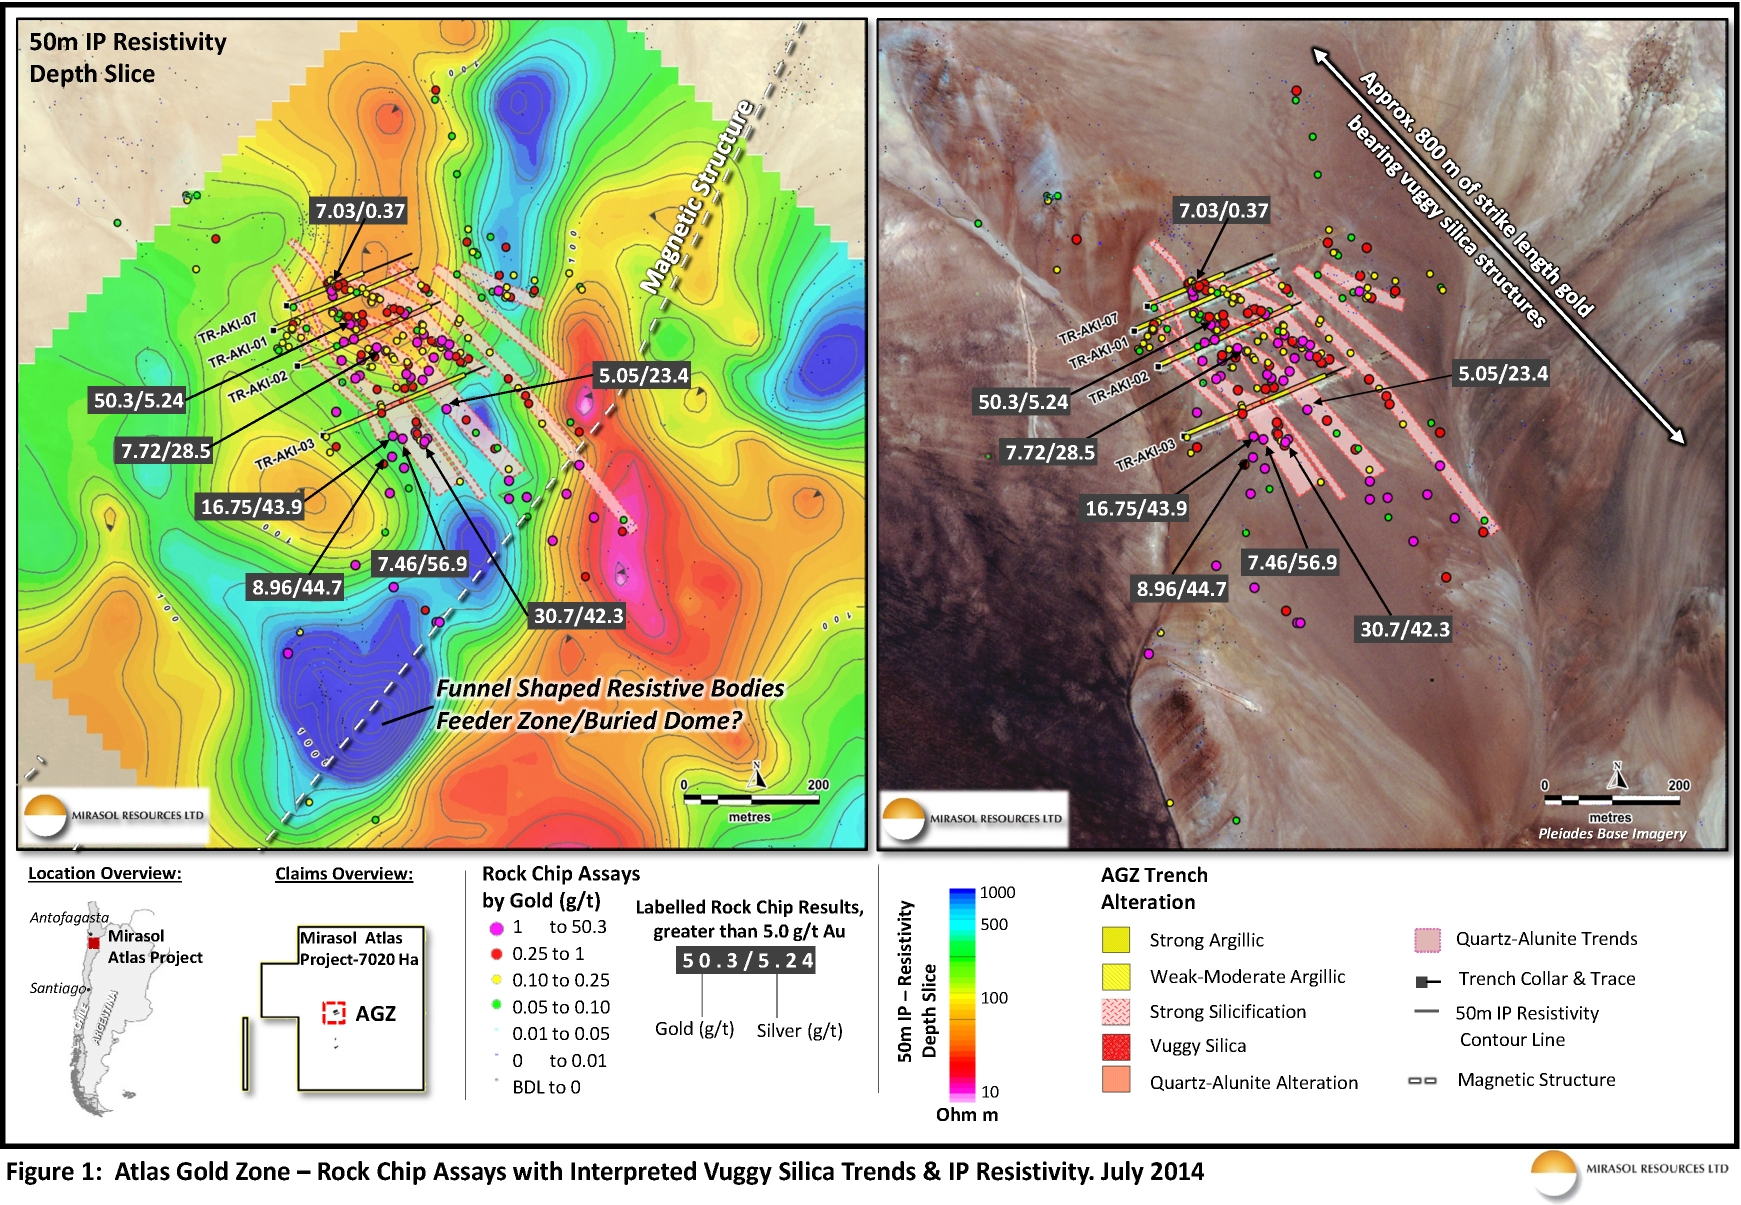 Figure 1: Atlas Gold Zone – Rock Chip Assays with Interpreted Vuggy Silica Trends & IP Resistivity. July 2014